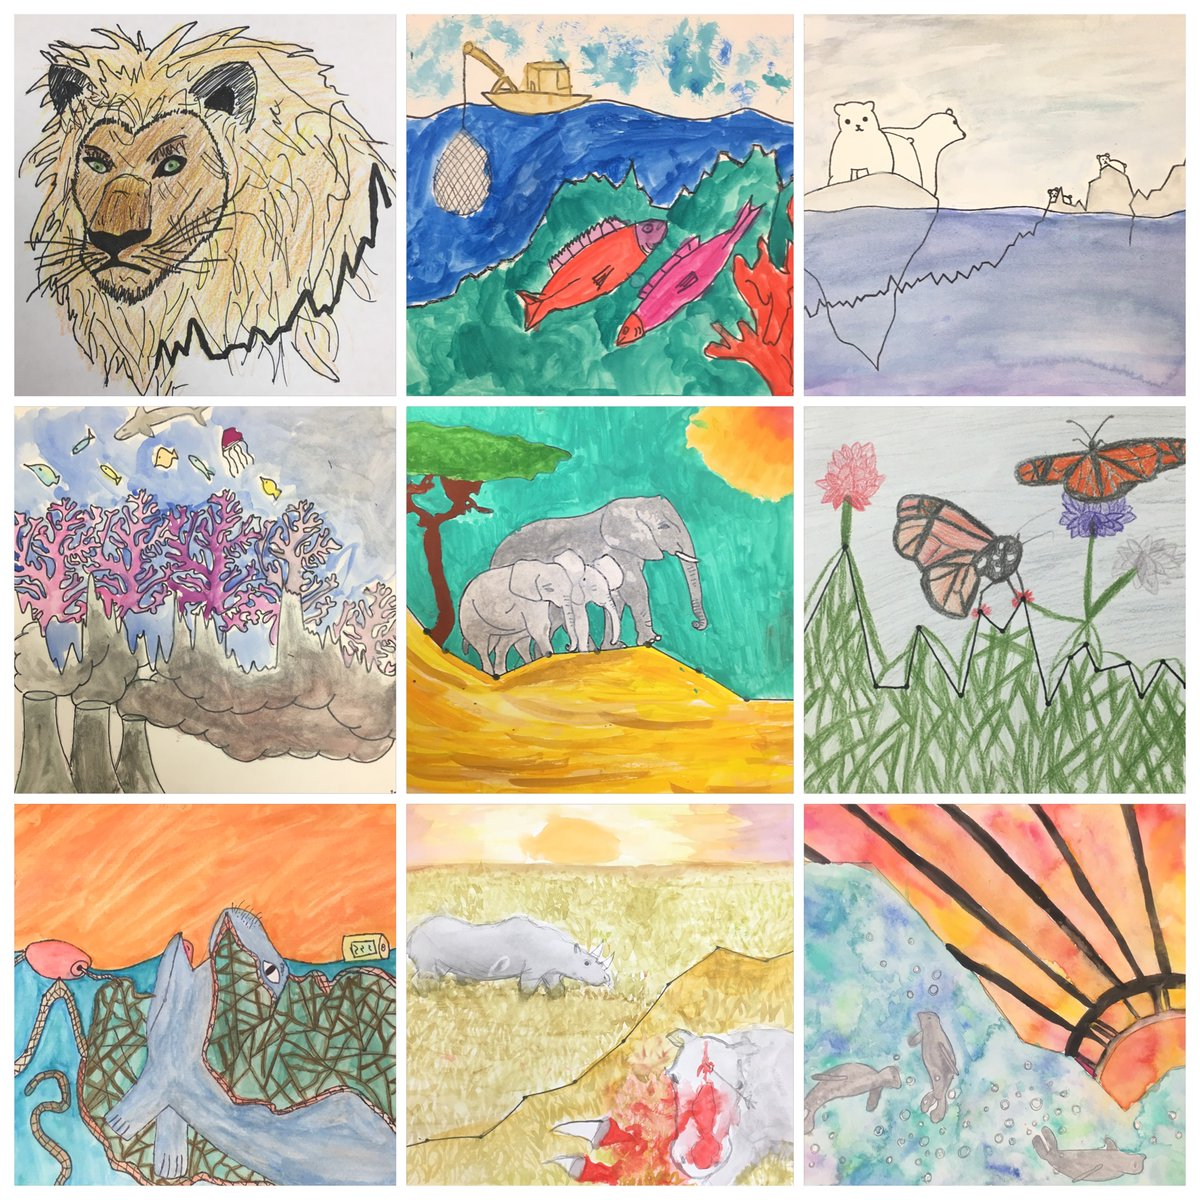 6th Grade students graphical artwork from Kailua, HI